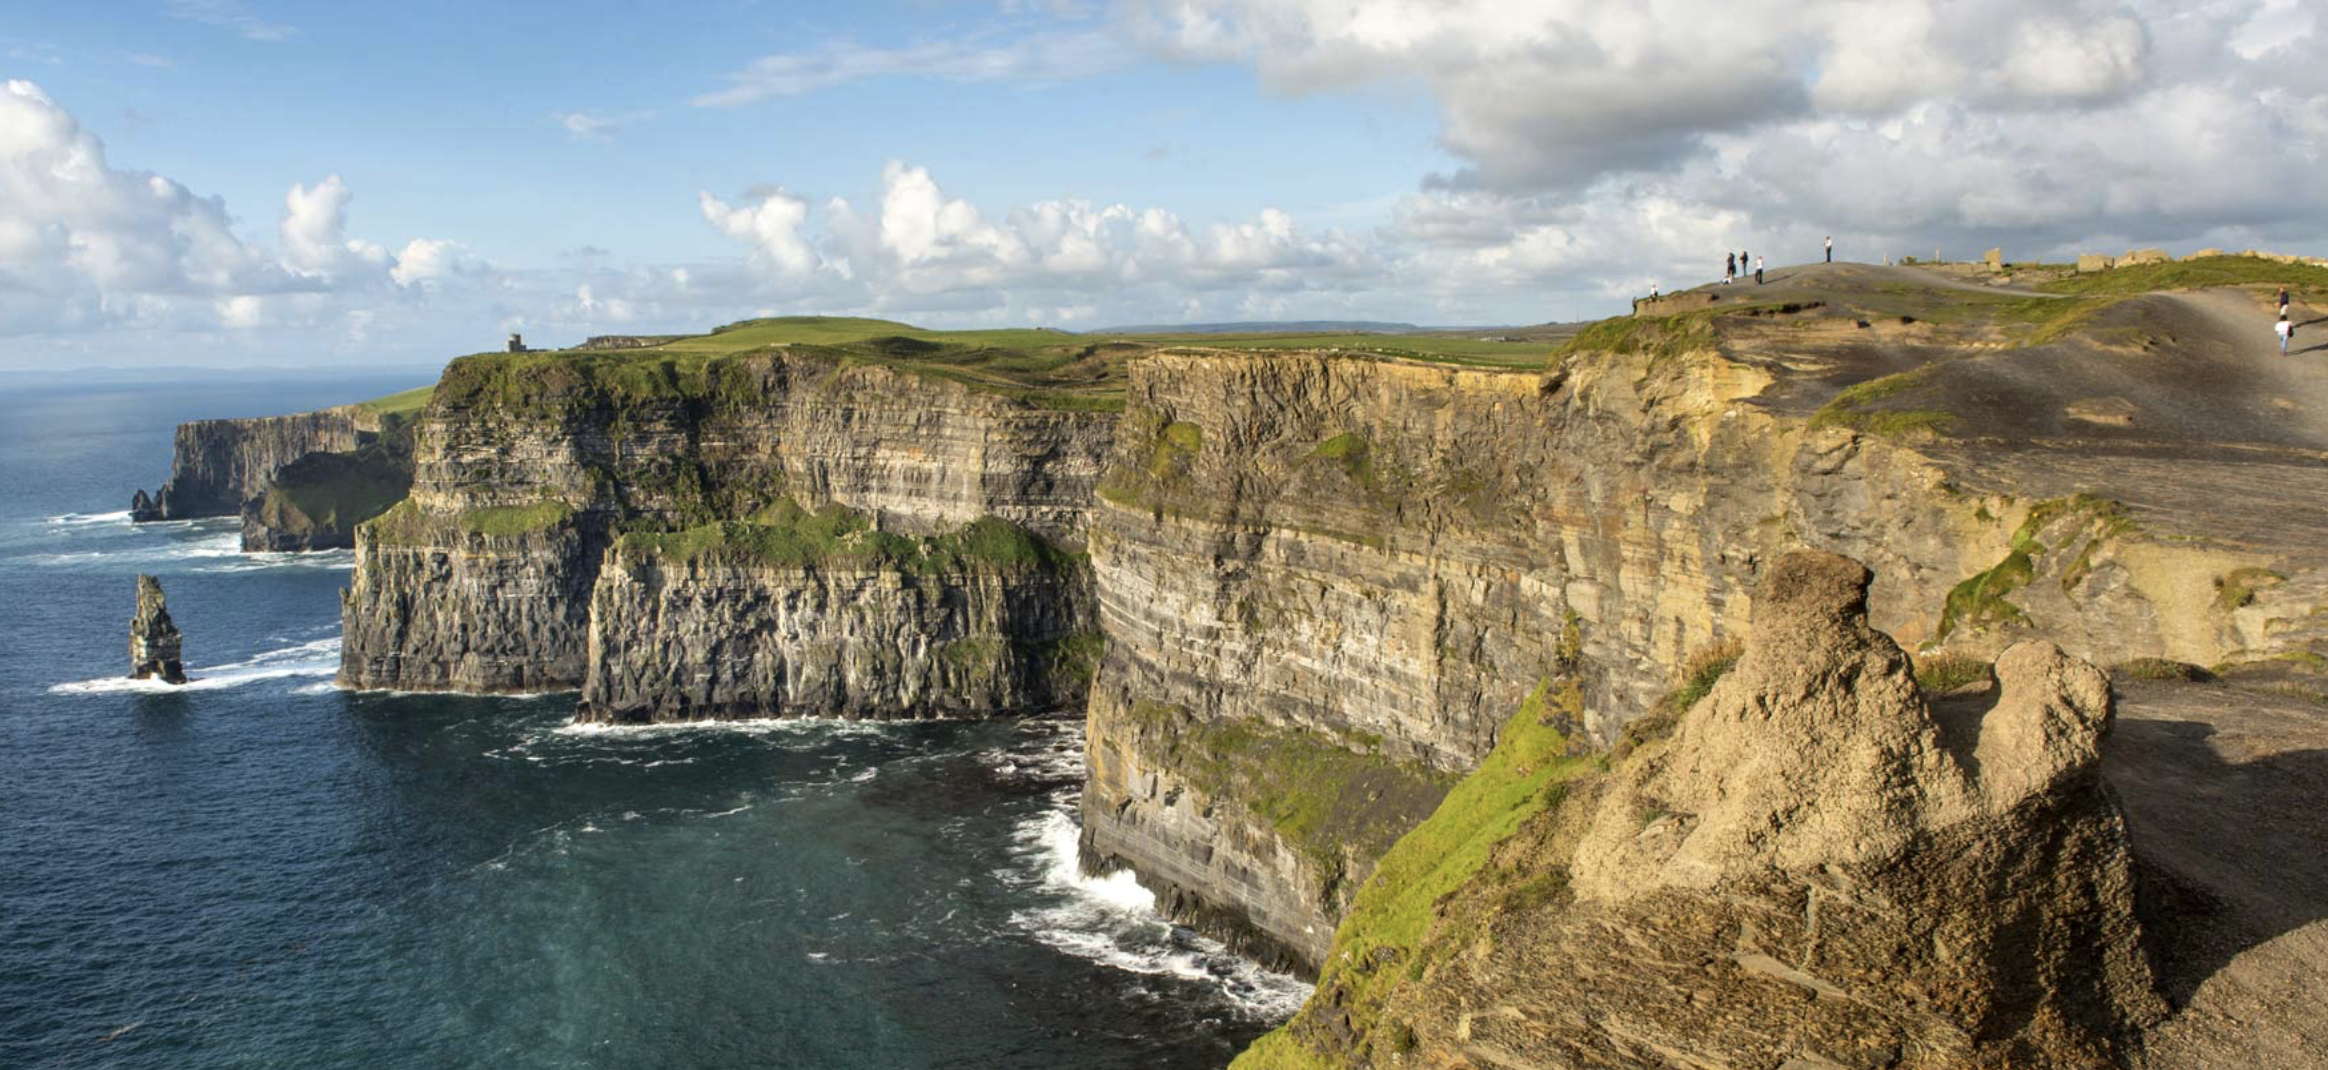 CLIFFS OF MOHER, LOOKING NORTH